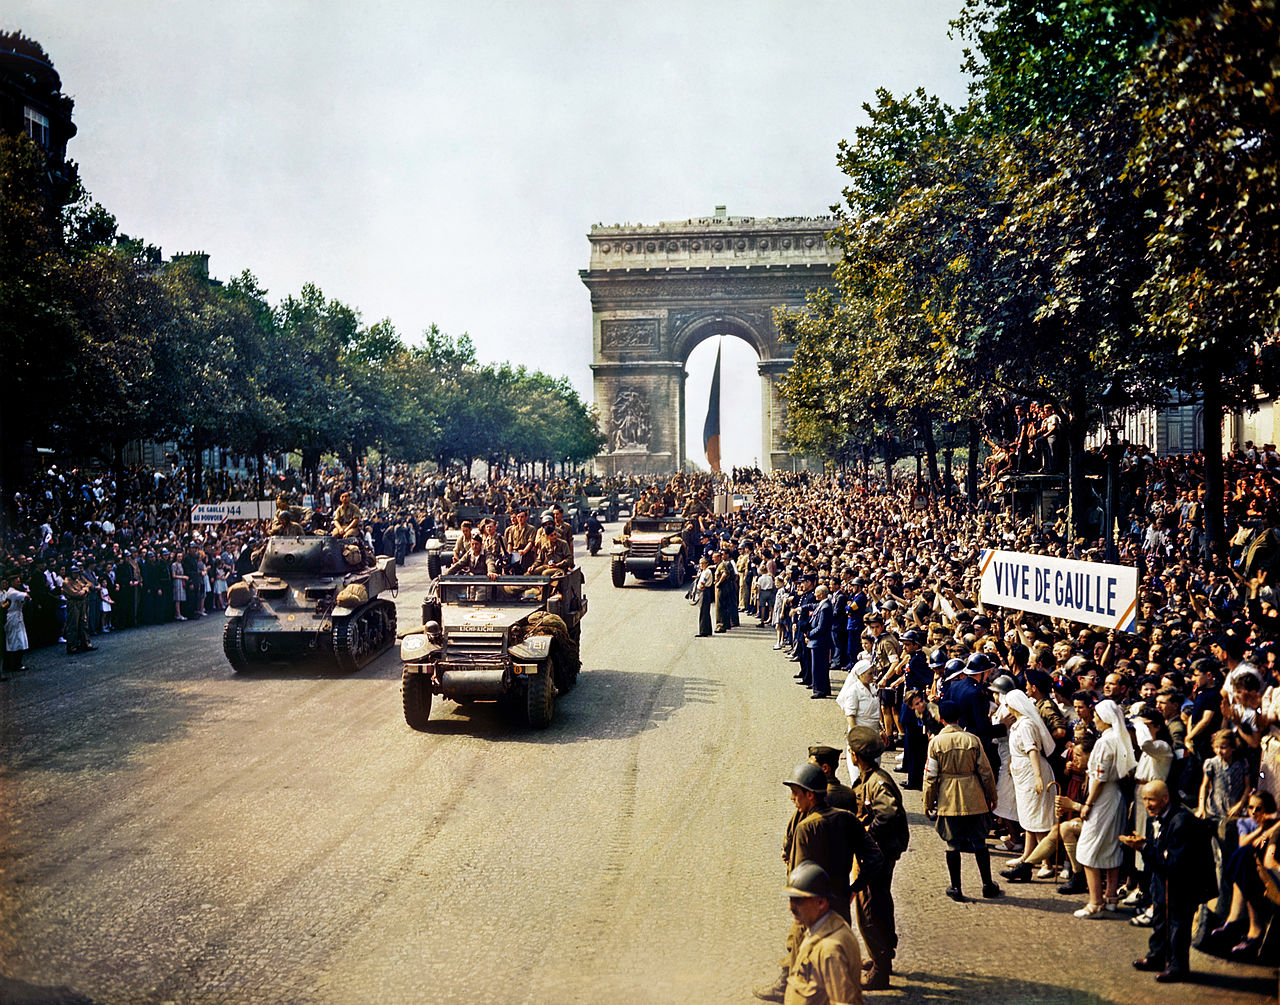 Crowds of French patriots line the Champs Elysees to view Free French tanks and half tracks of General Leclerc's 2nd Armored Division passes through the Arc du Triomphe, after Paris was liberated on August 26, 1944. Among the crowd can be seen banners in support of Charles de Gaulle. Photo taken by Jack Downey, U.S. Office of War Information. From the repository of the Library of Congress Prints and Photographs Division Washington, D.C. 20540 USA.